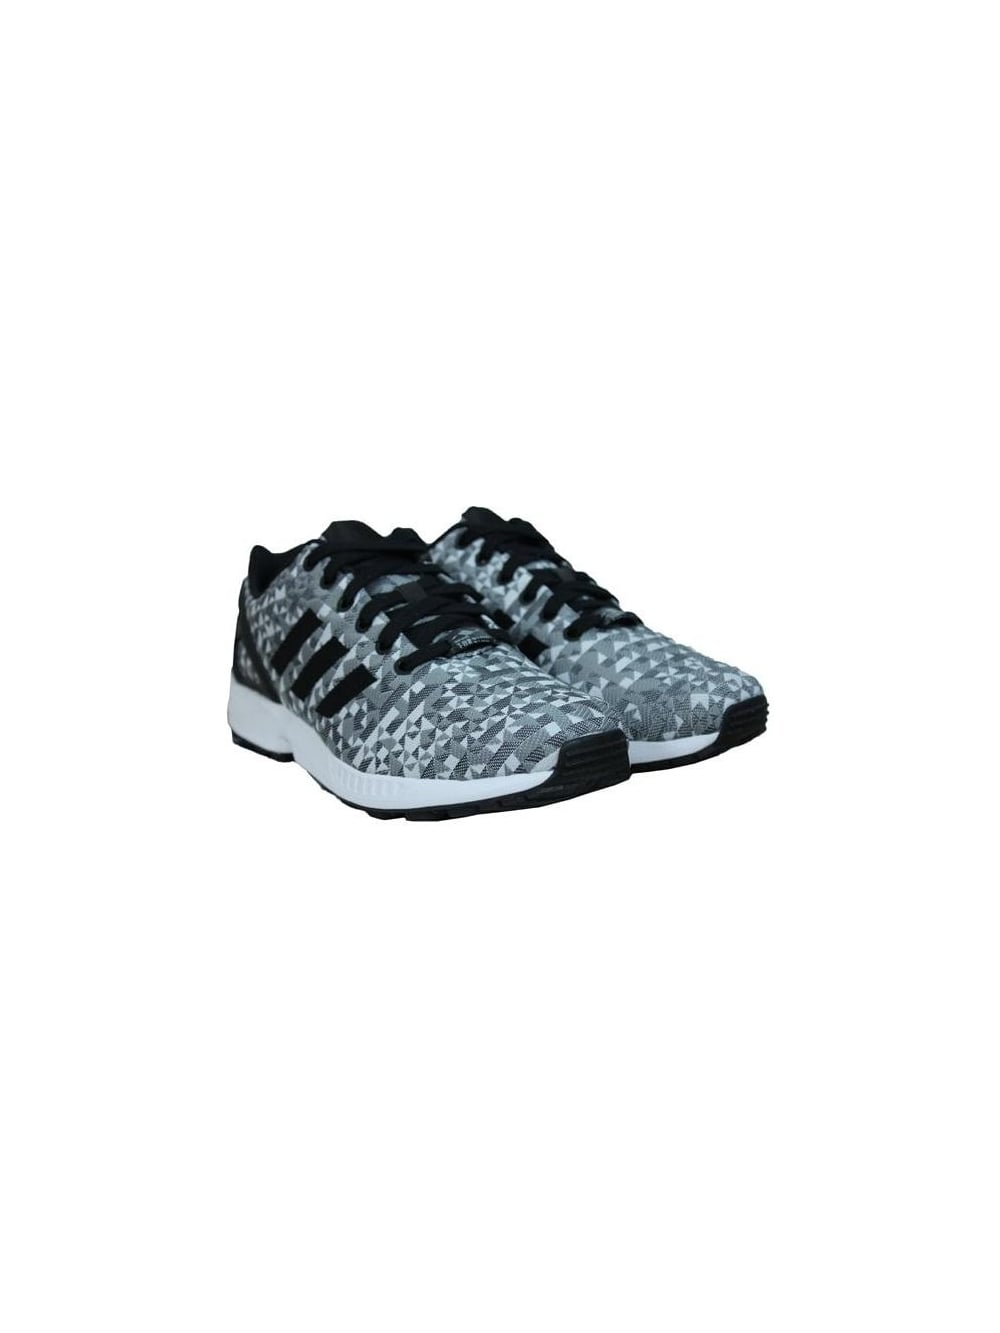 huge discount 96f32 0b9c1 ZX Flux Weave - White/Black